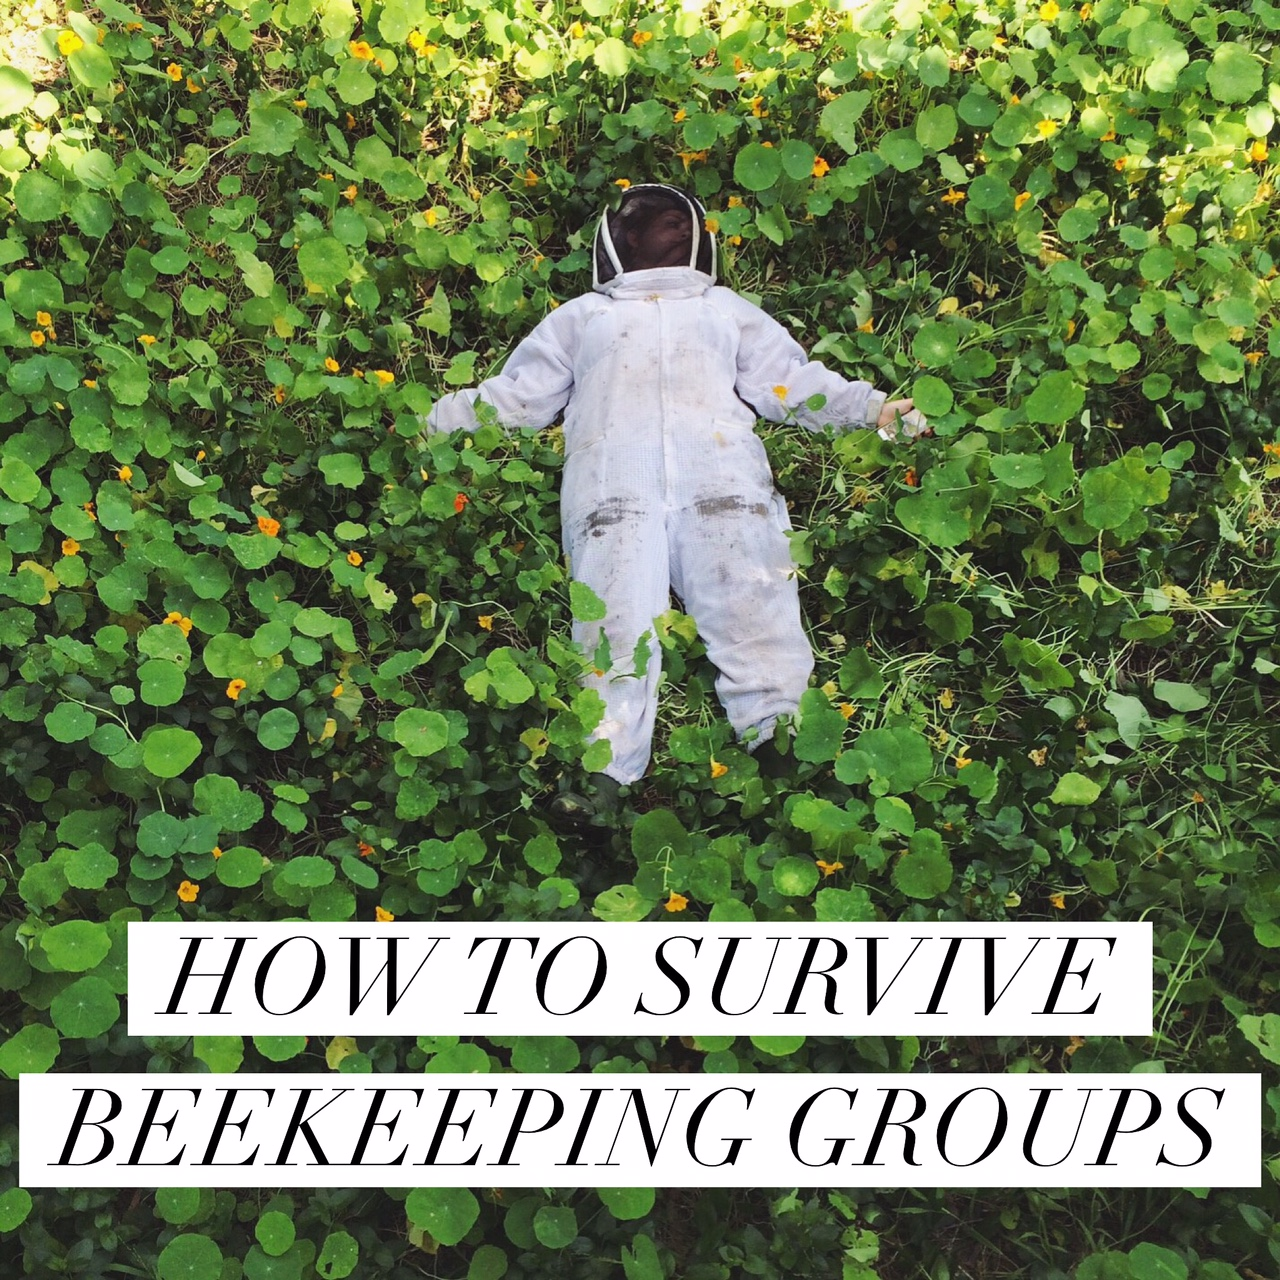 HOW TO SURVIVE BEEKEEPING GROUPS